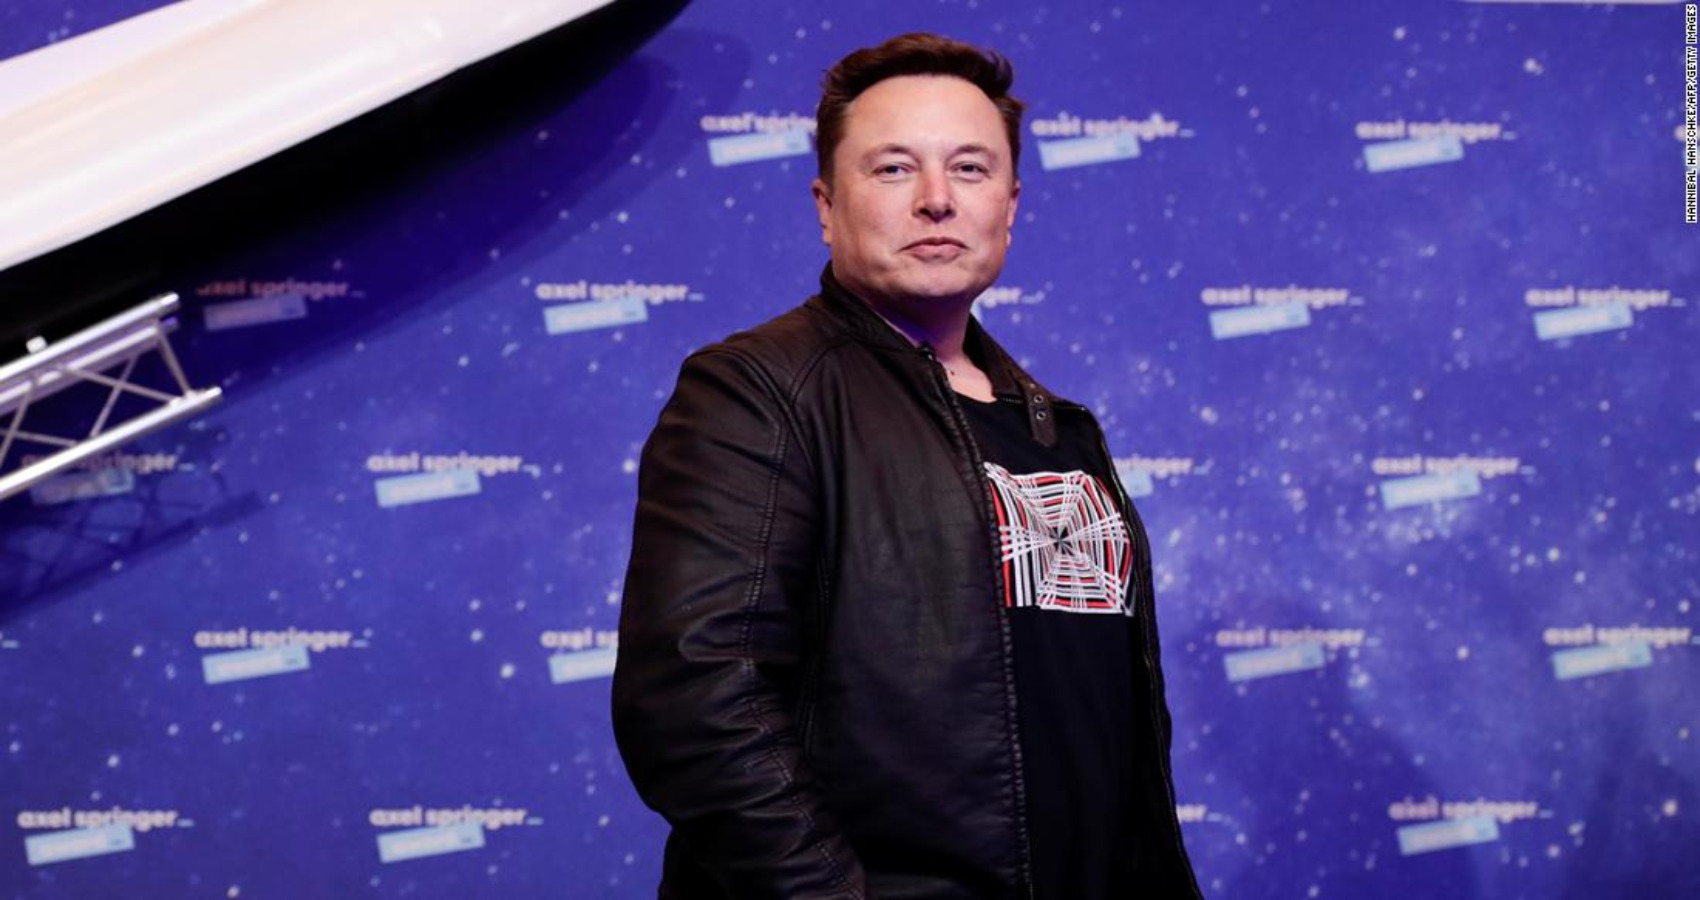 Elon Musk, The World's Richest Man, Gets A Whole Lot Richer